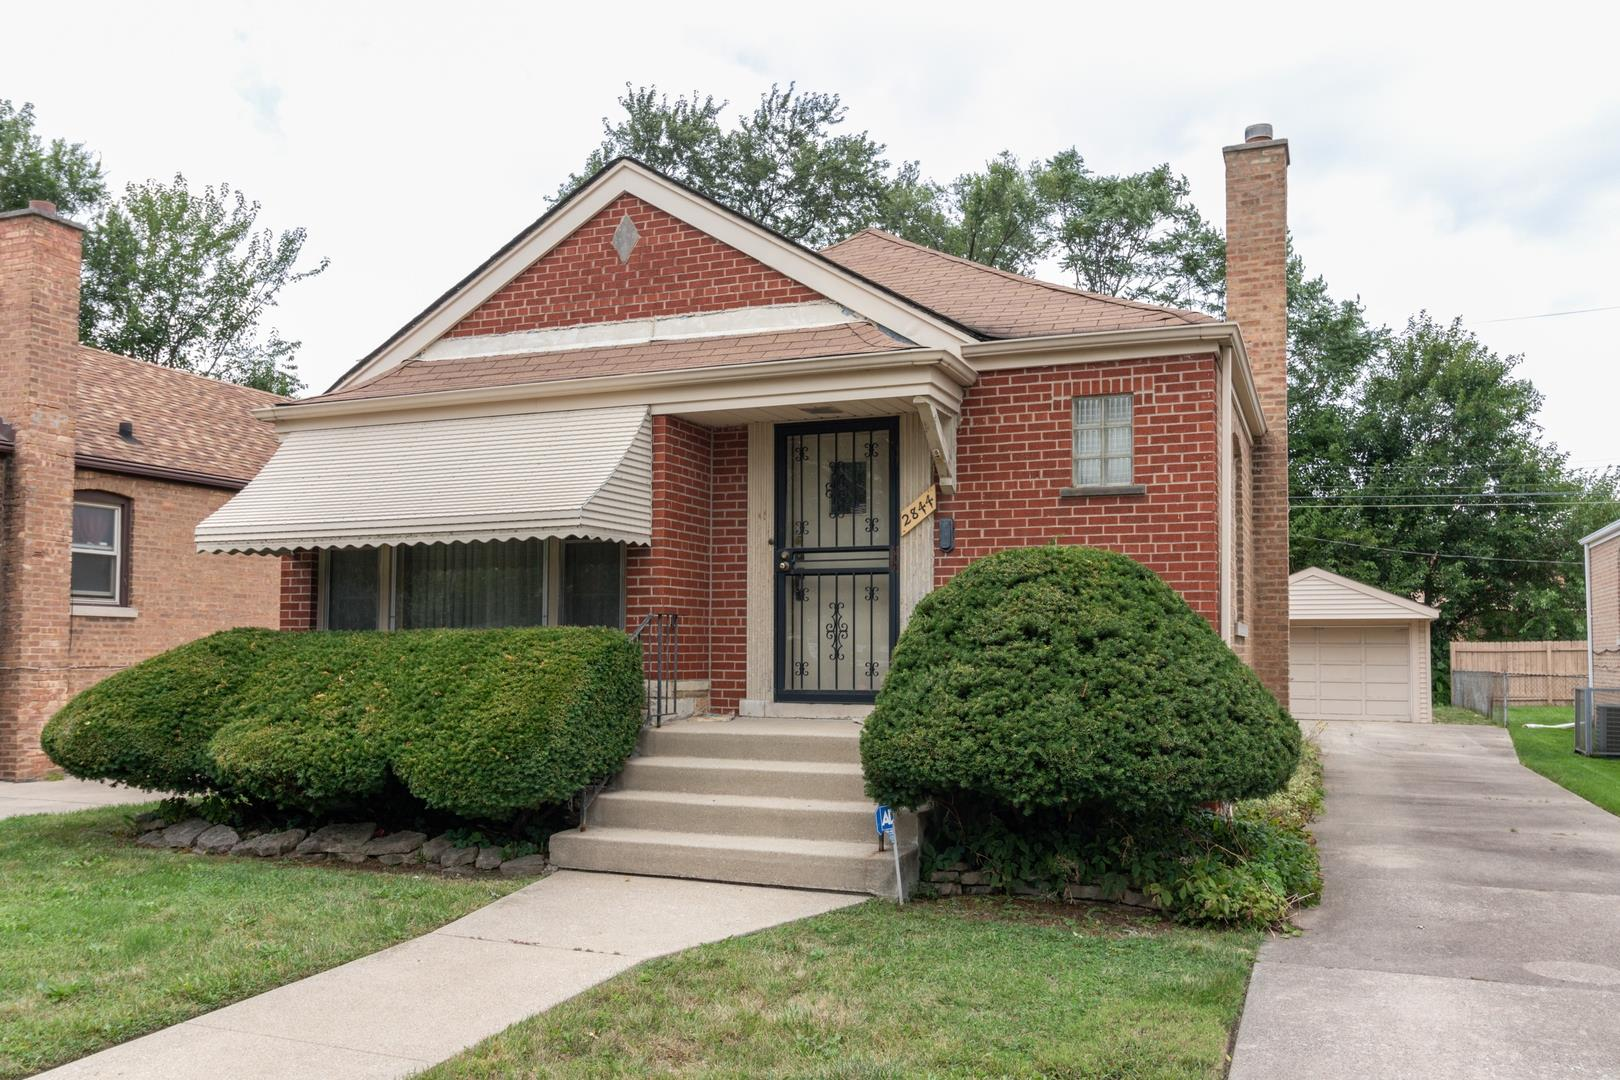 2844 W 85th Street, Chicago, IL 60652 - #: 10877253